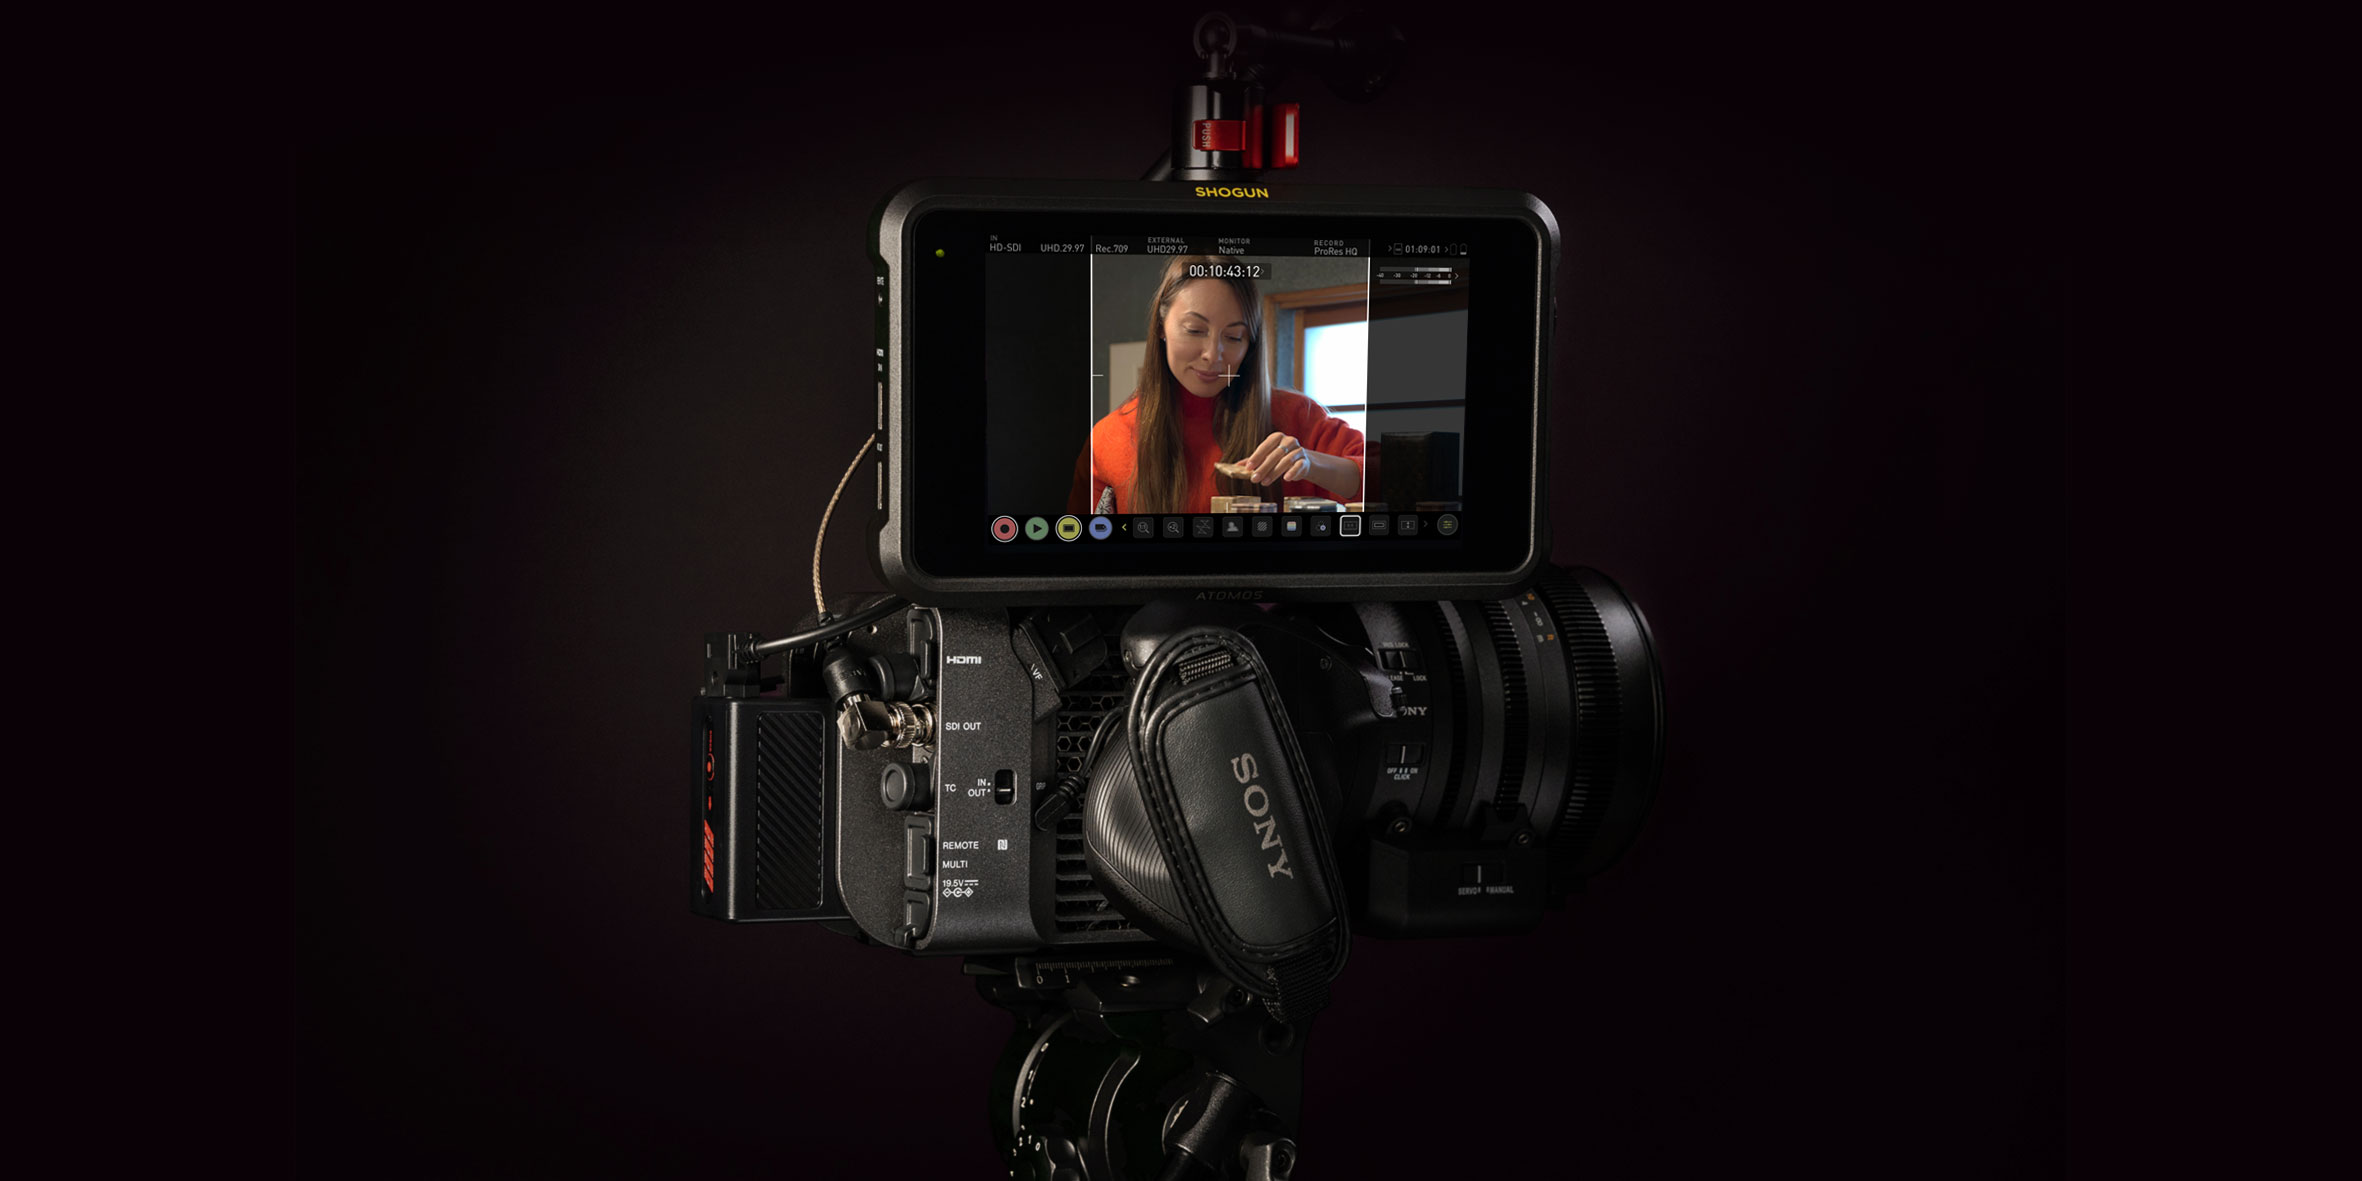 Shogun 7 & the Sony FX6 takes your production to another level